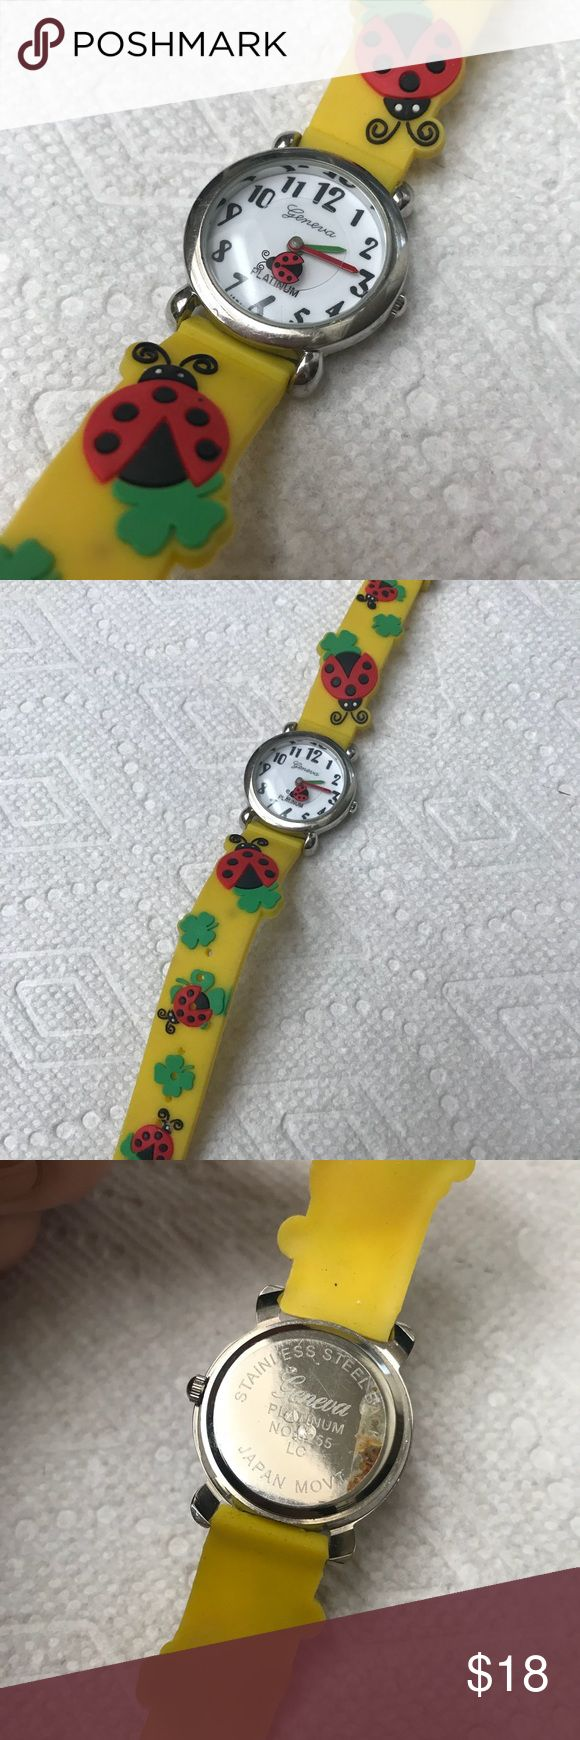 Geneva Ladybug Watch New Working Japan Yellow Cute ladies watch from Geneva with Japanese movement. In excellent unused shape. Still has plastic protective coat on metal. Rubber watch band. Bright colors. Very cute! Geneva Accessories Watches